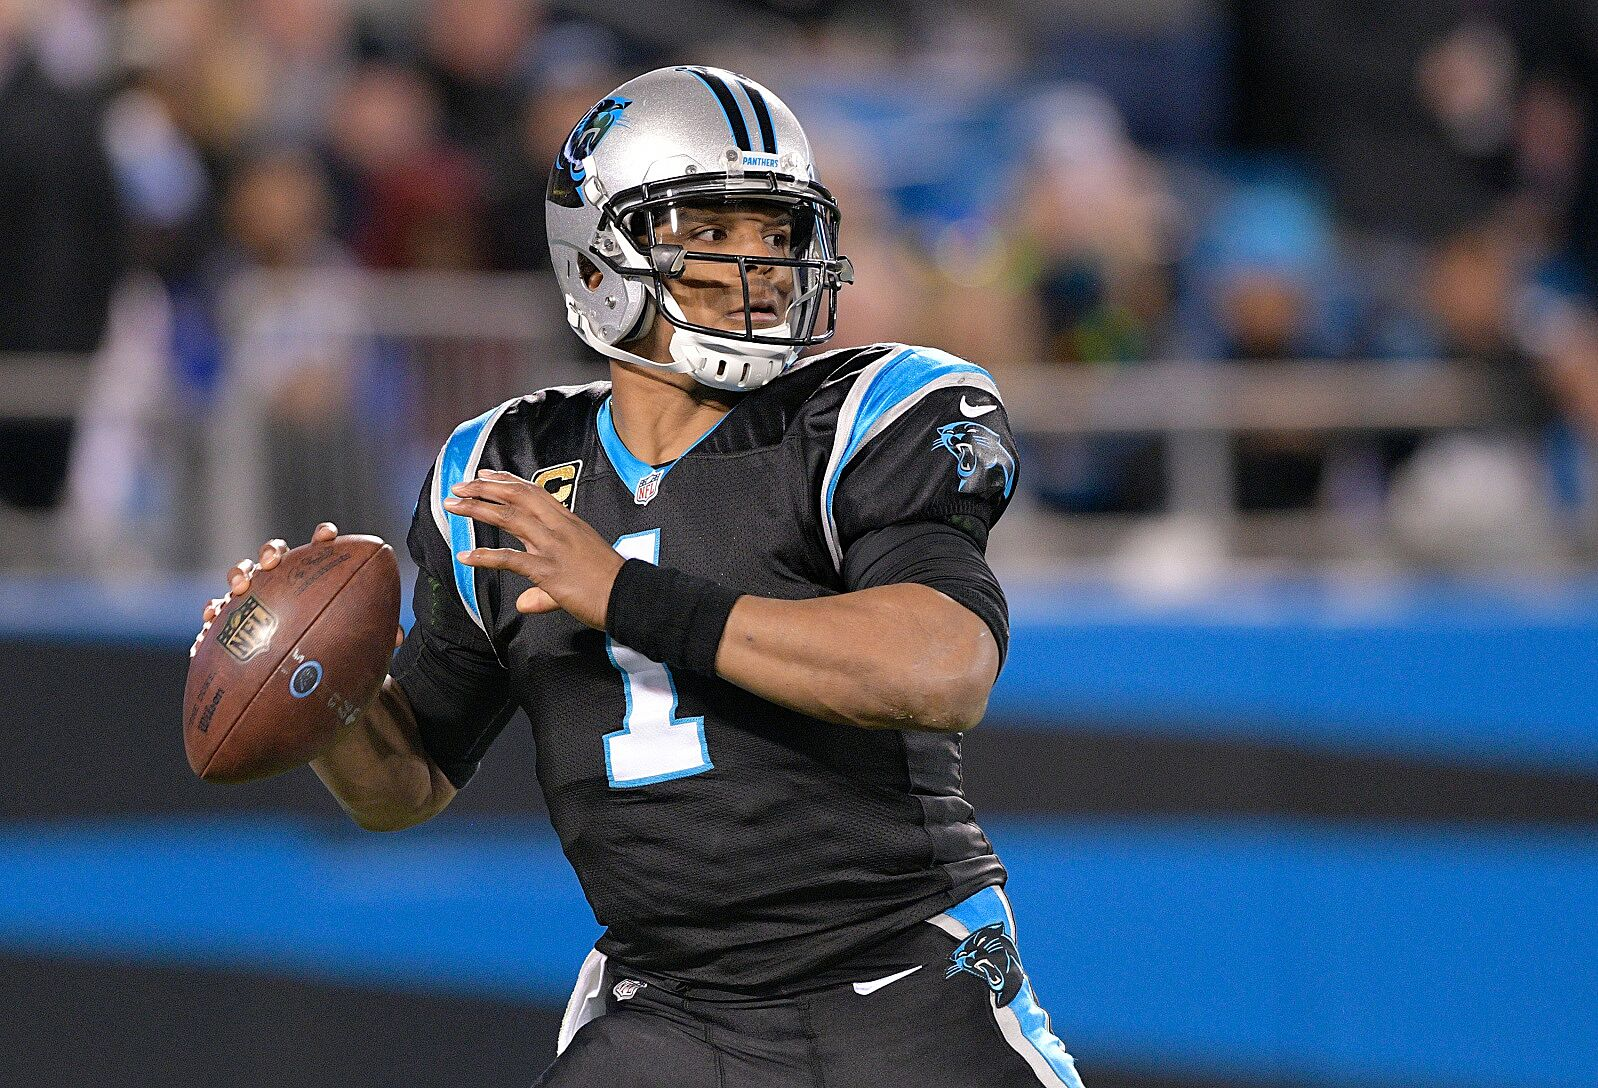 Cam Newton: Best Trade Destinations for a Former League MVP